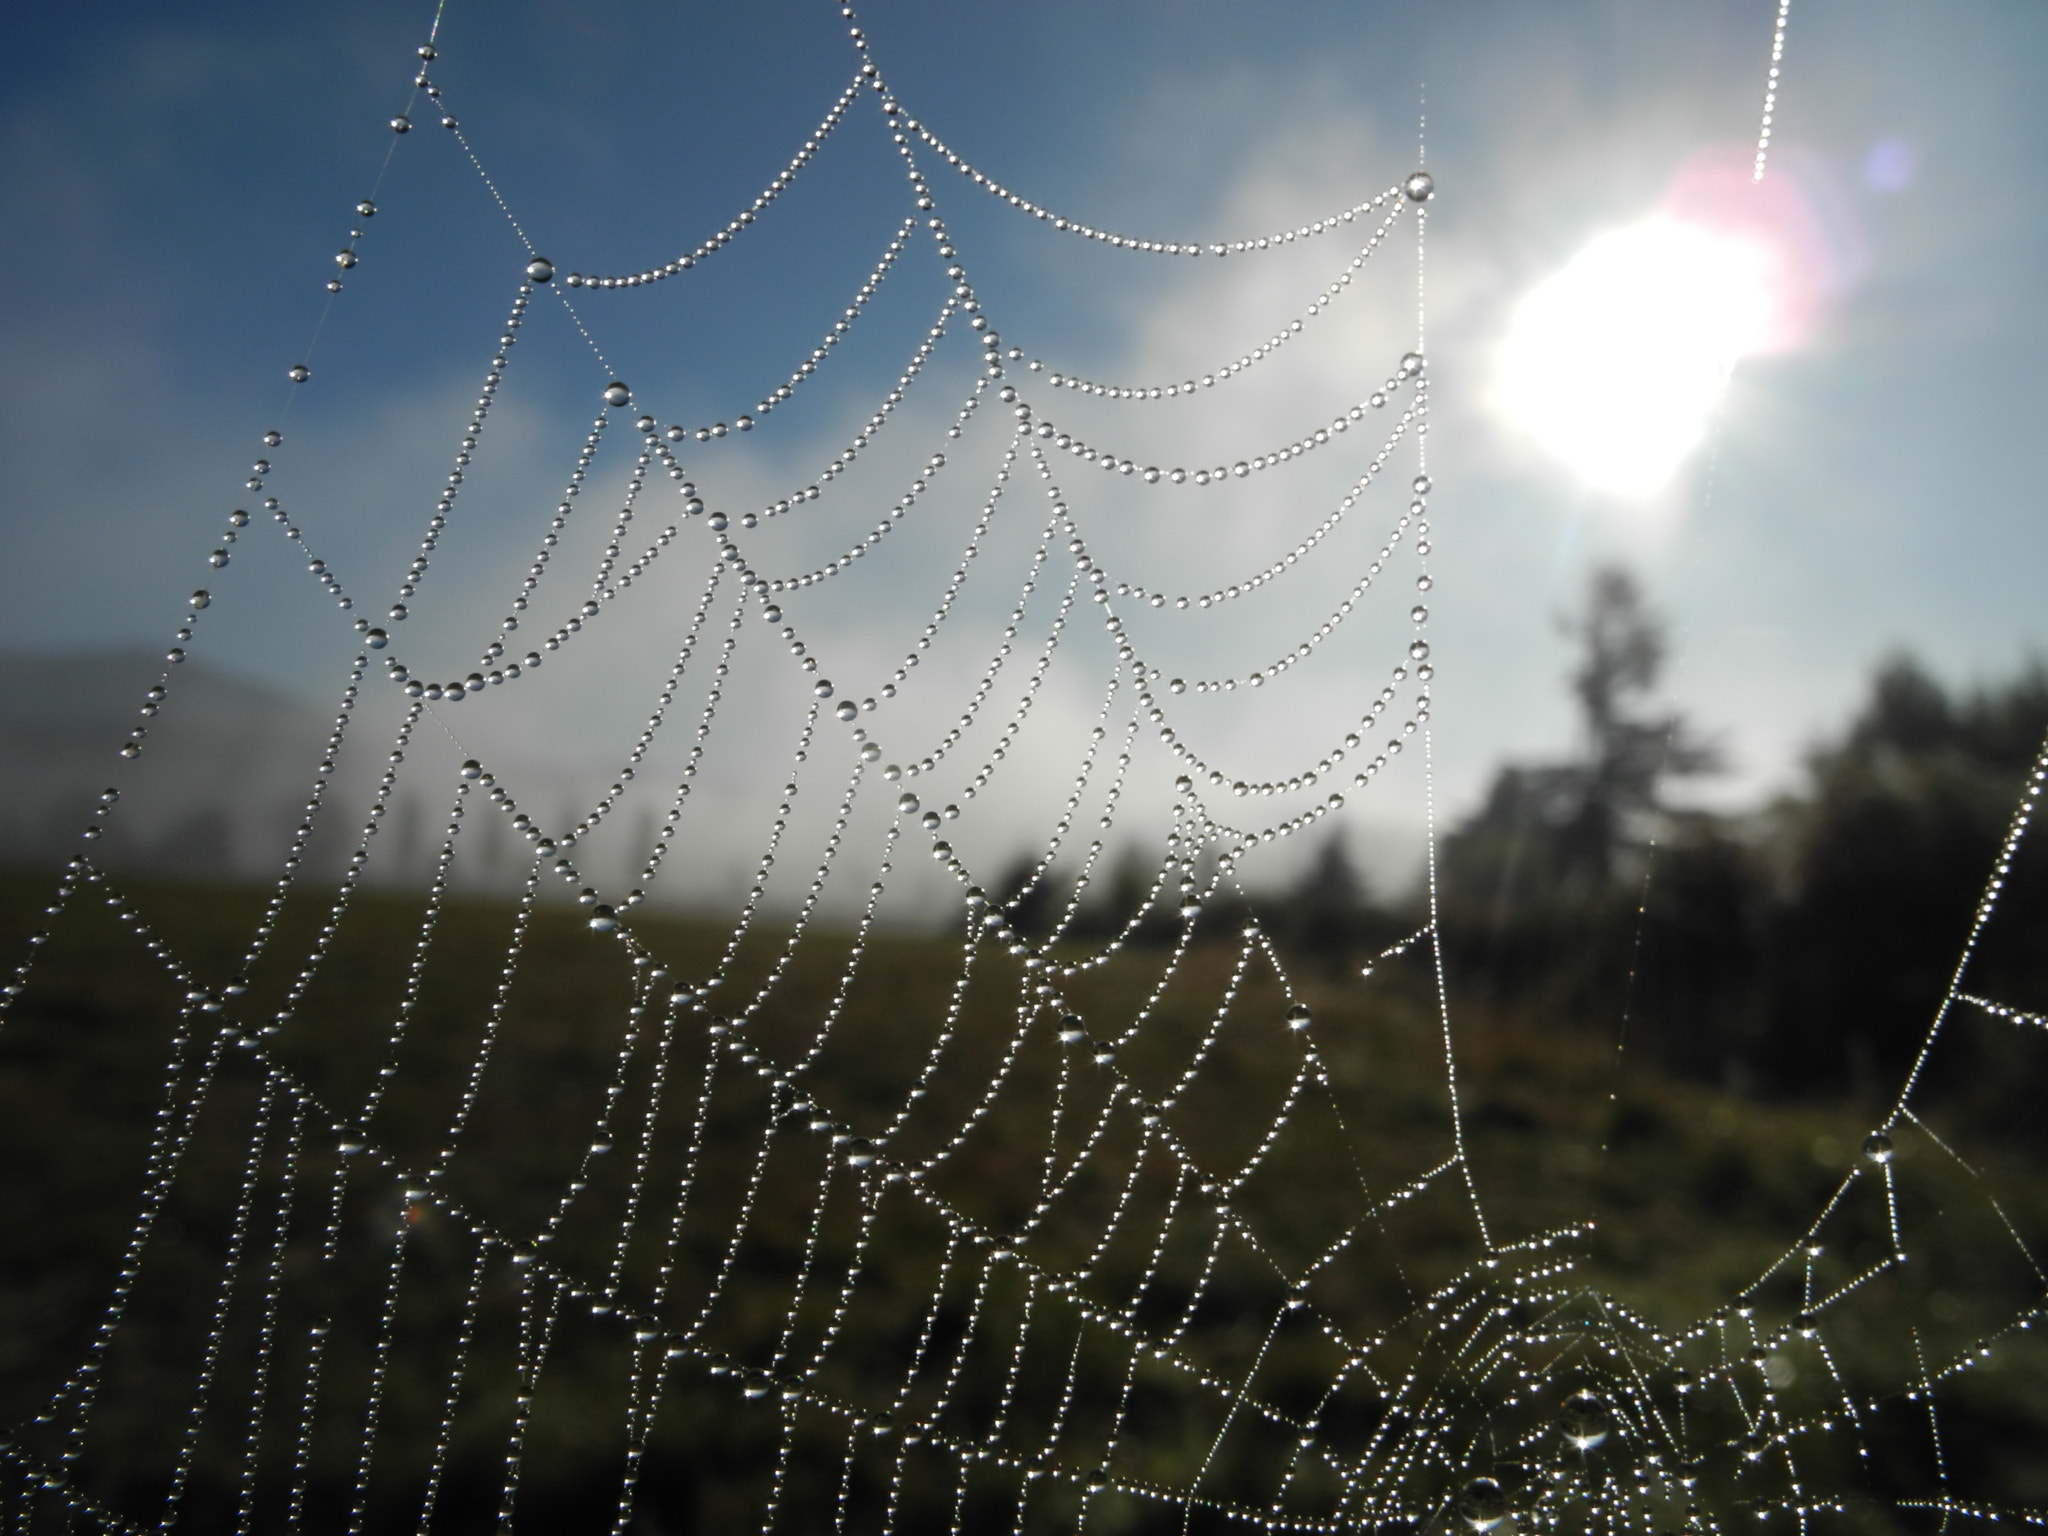 Photograph Fall Web by Kerry Nobbs on 500px